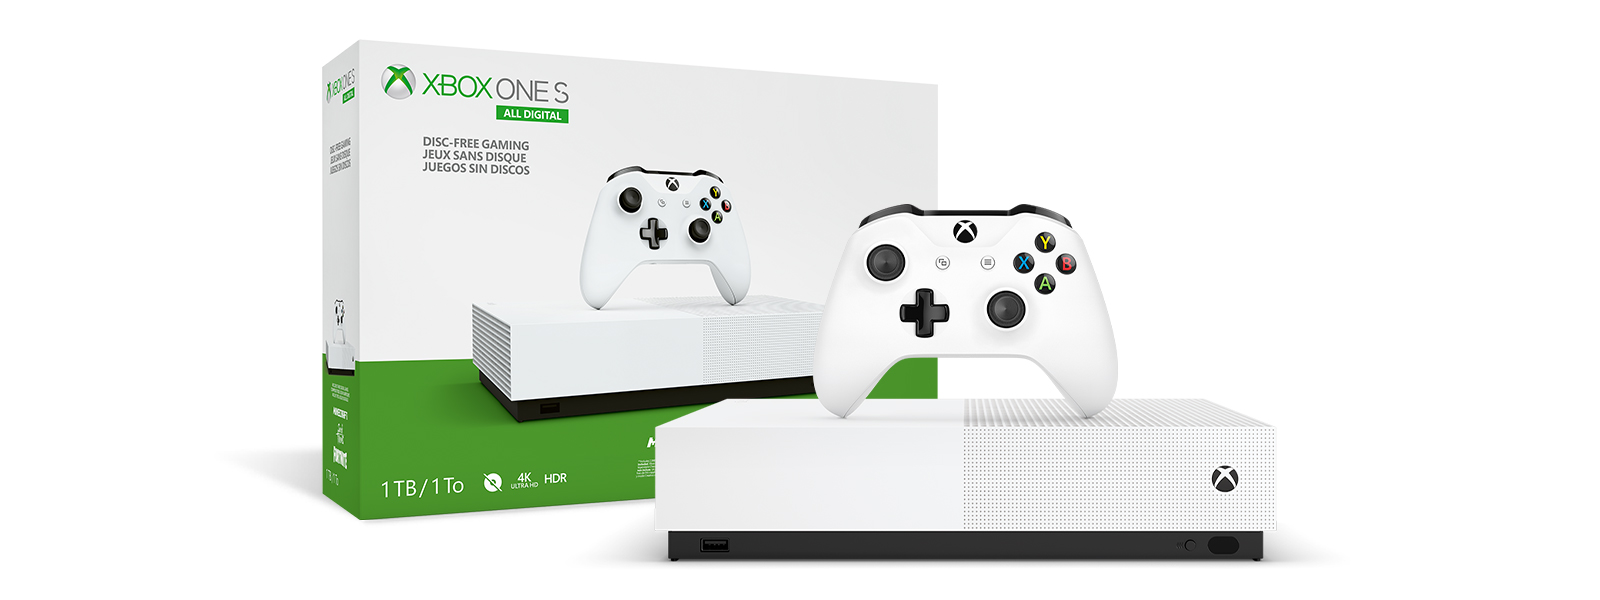 Xbox One S All-Digital Edition product box and Xbox One S All-Digital Edition